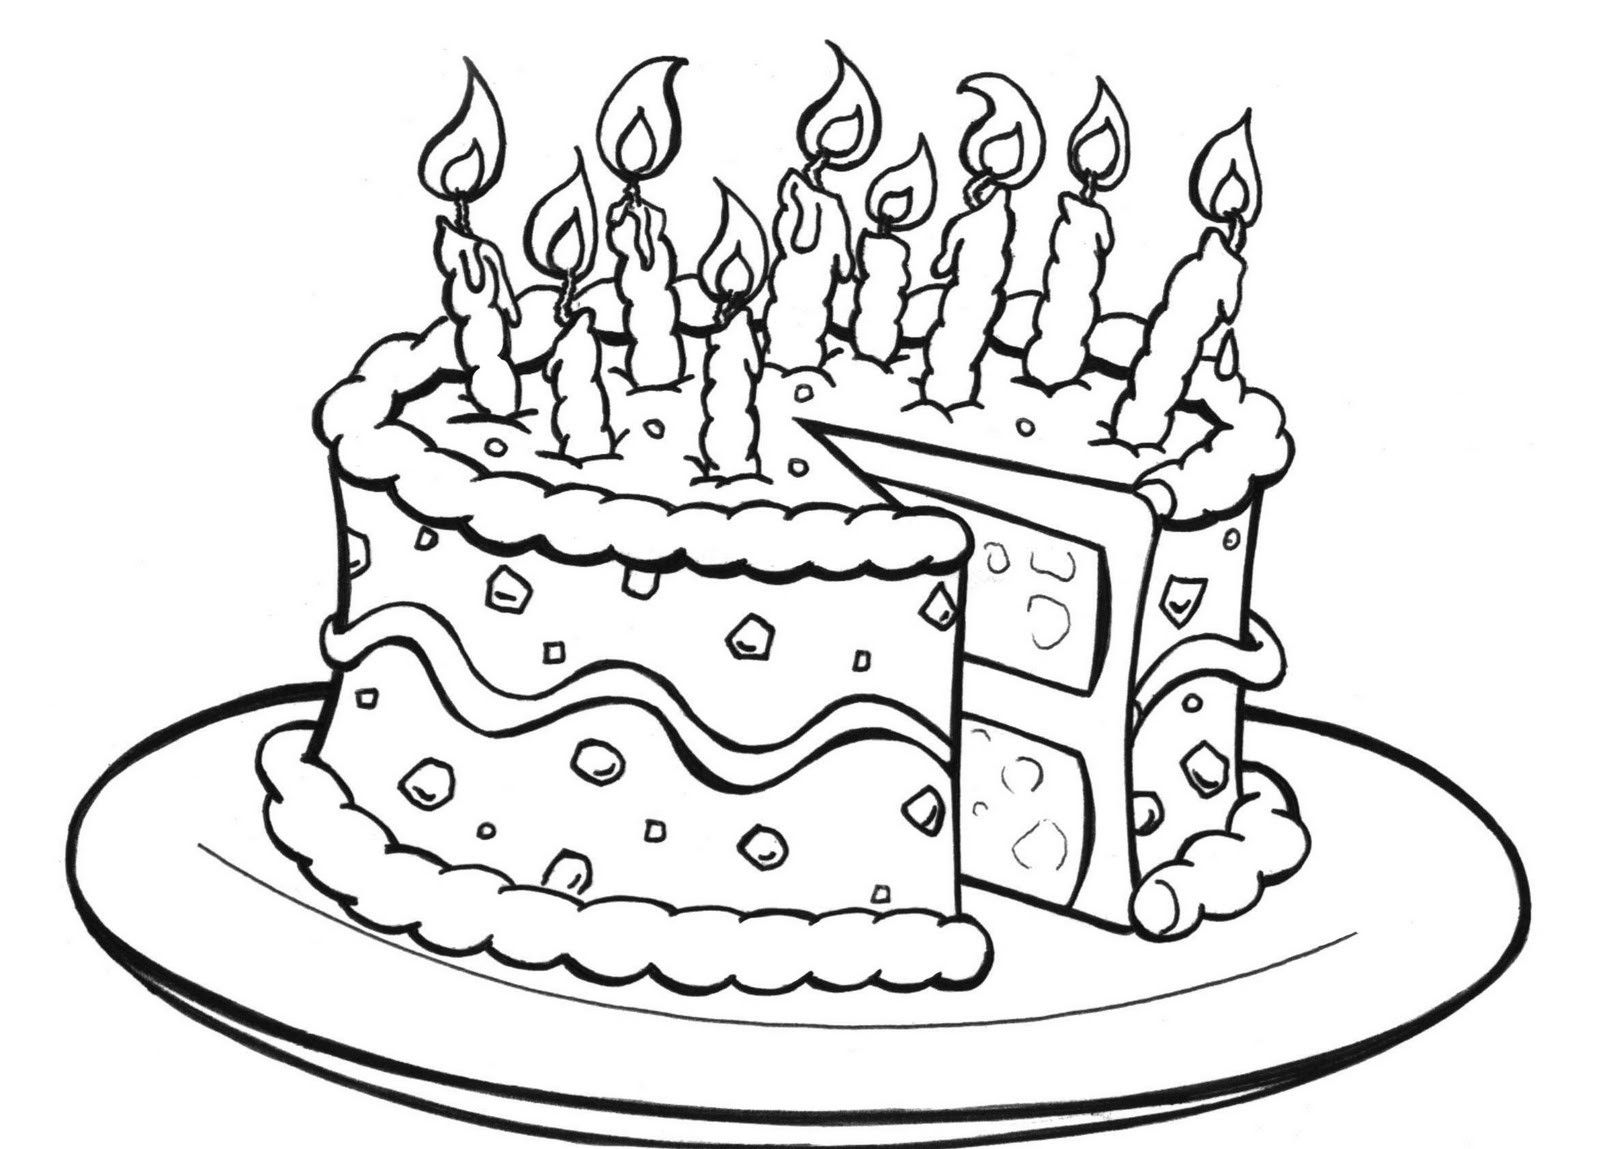 Birthday Cake Coloring Page Birthday Coloring Pages Happy Birthday Coloring Pages Birthday Cake Illustration